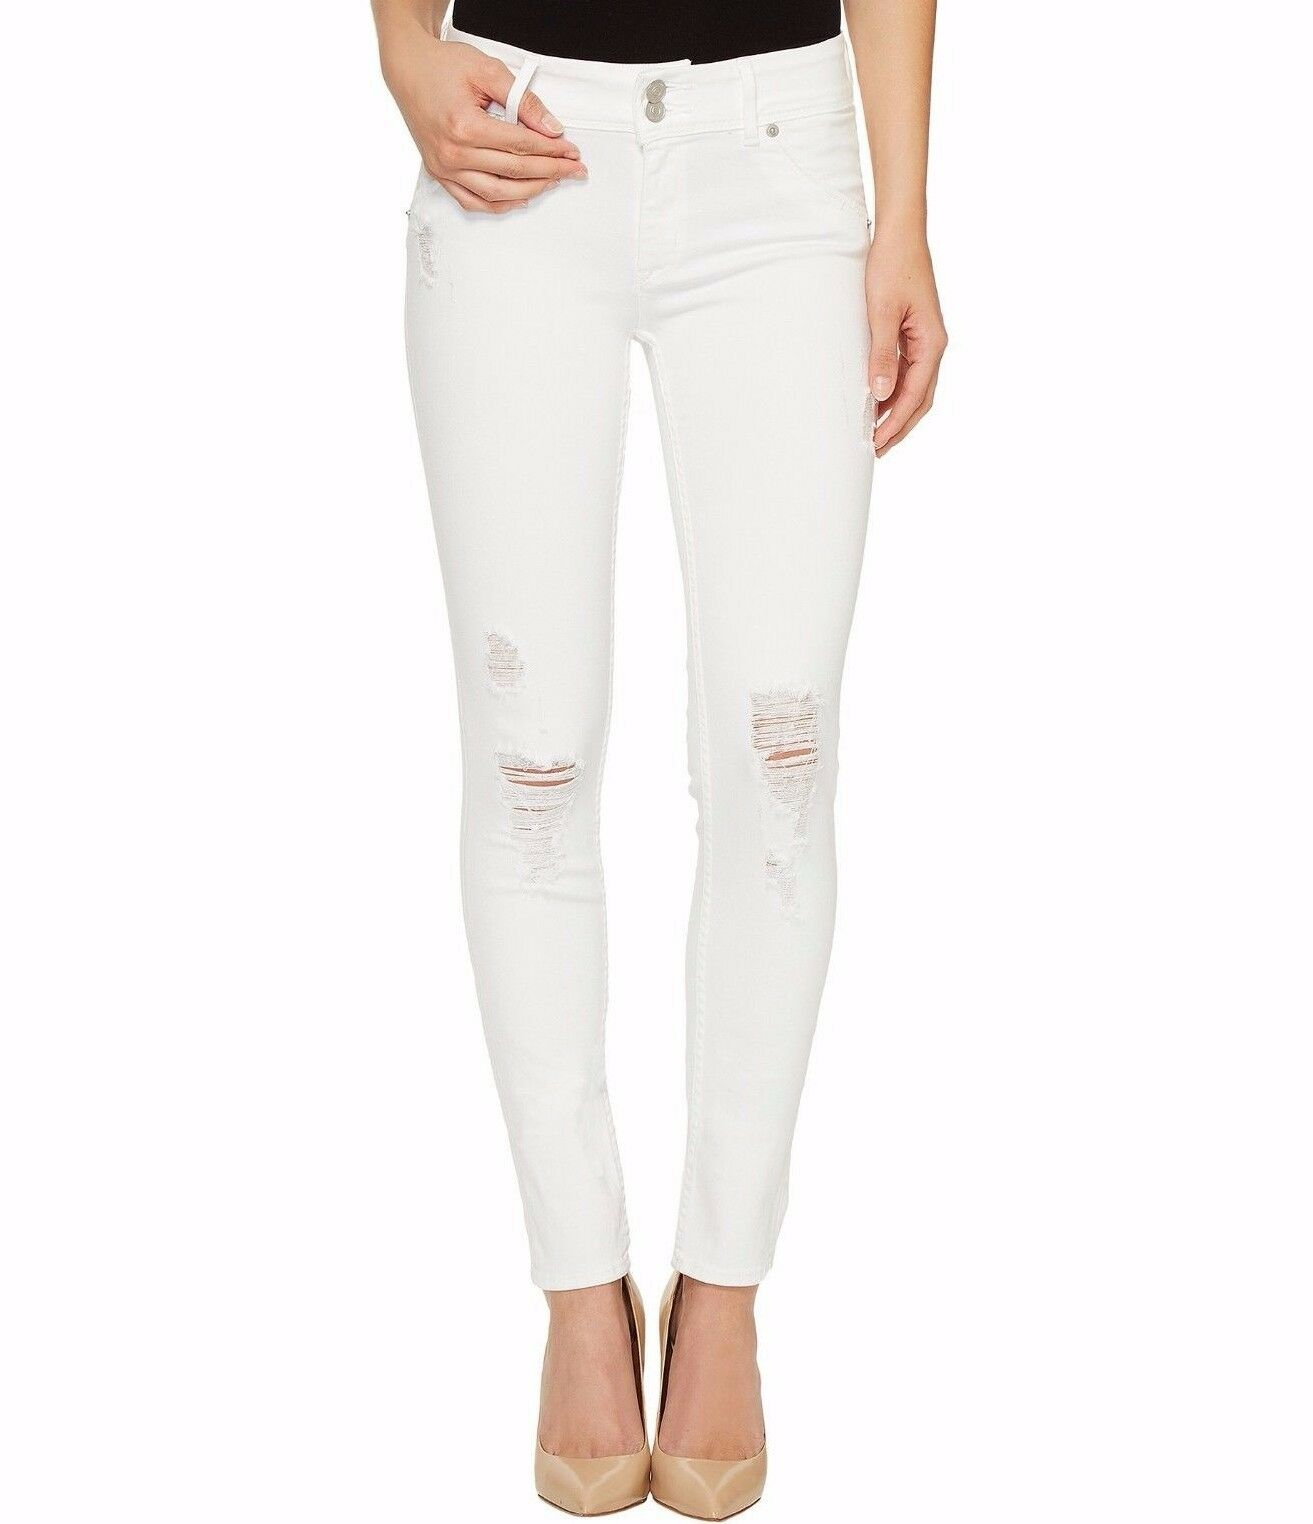 198 NWT HUDSON Sz32 COLLIN MIDRISE SKINNY STRETCH JEANS DEMOLISH WHITE DISTRESS